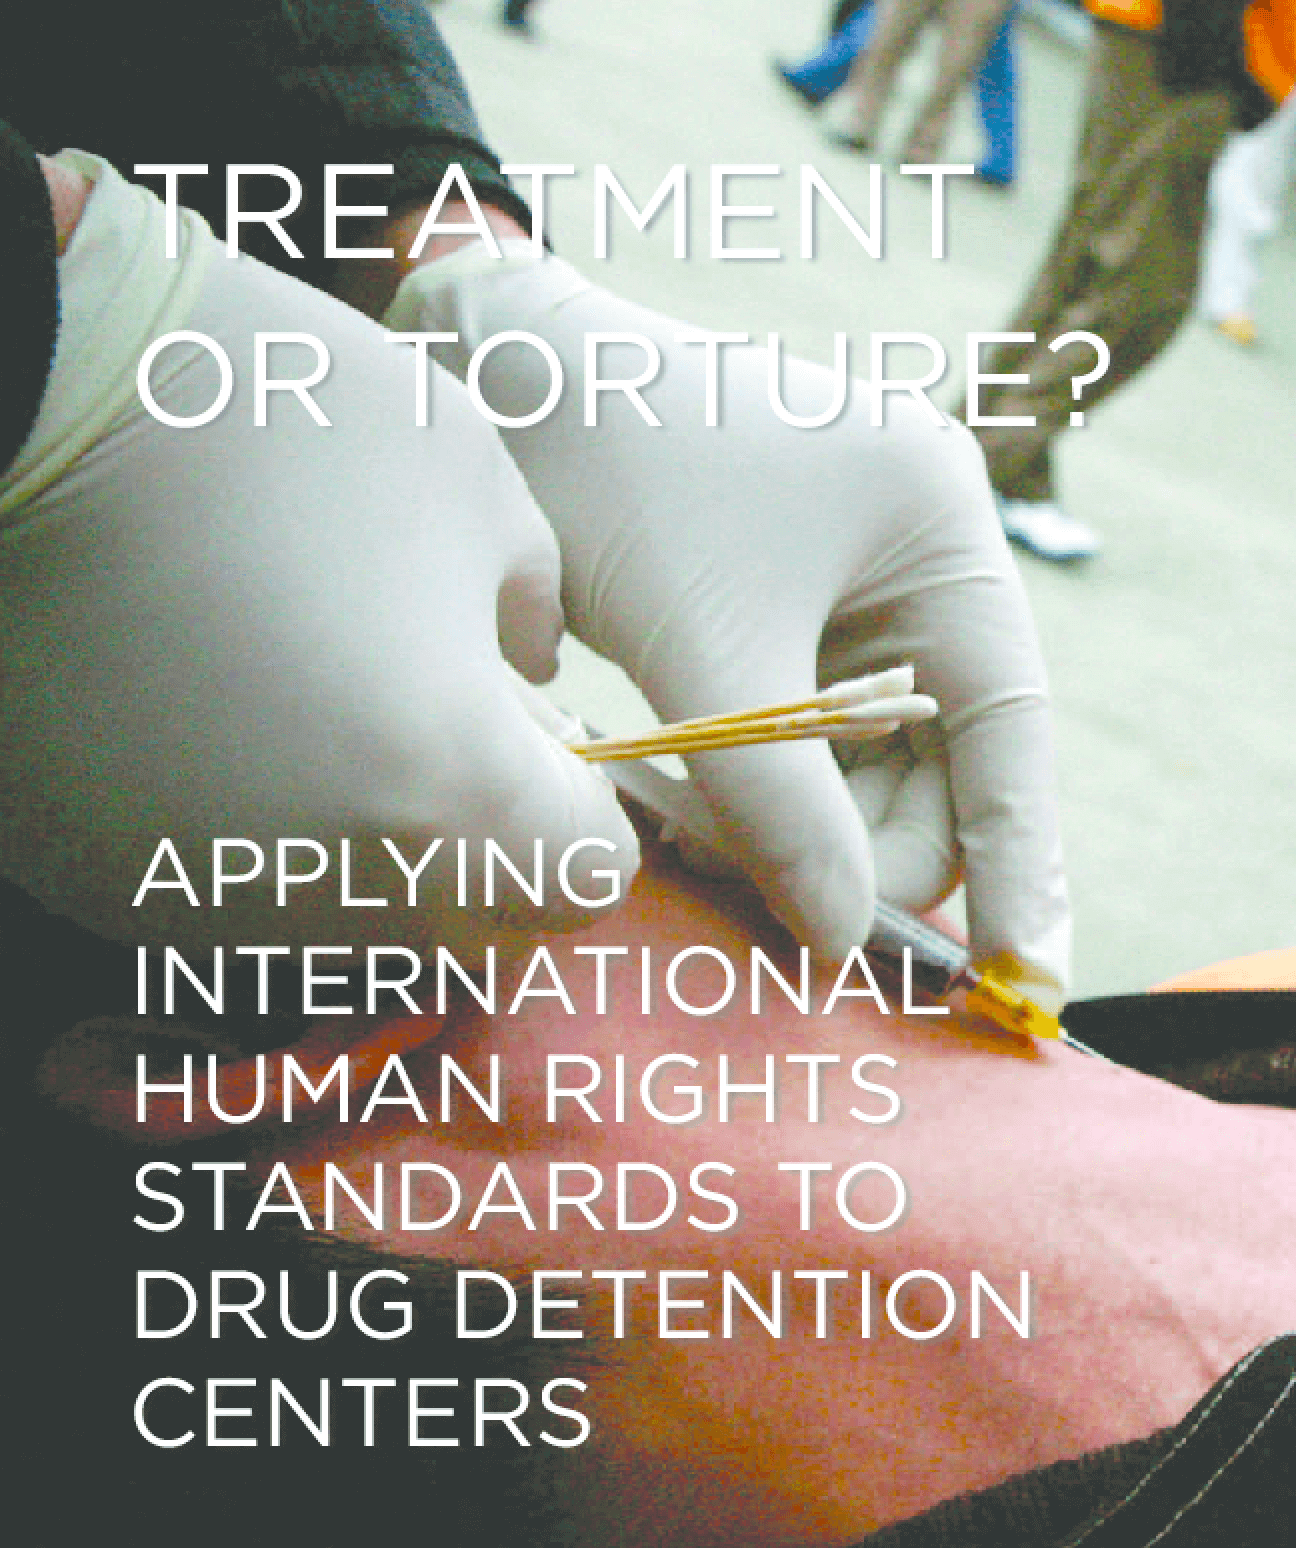 Treatment or Torture? Applying International Human Rights Standards to Drug Detention Centers